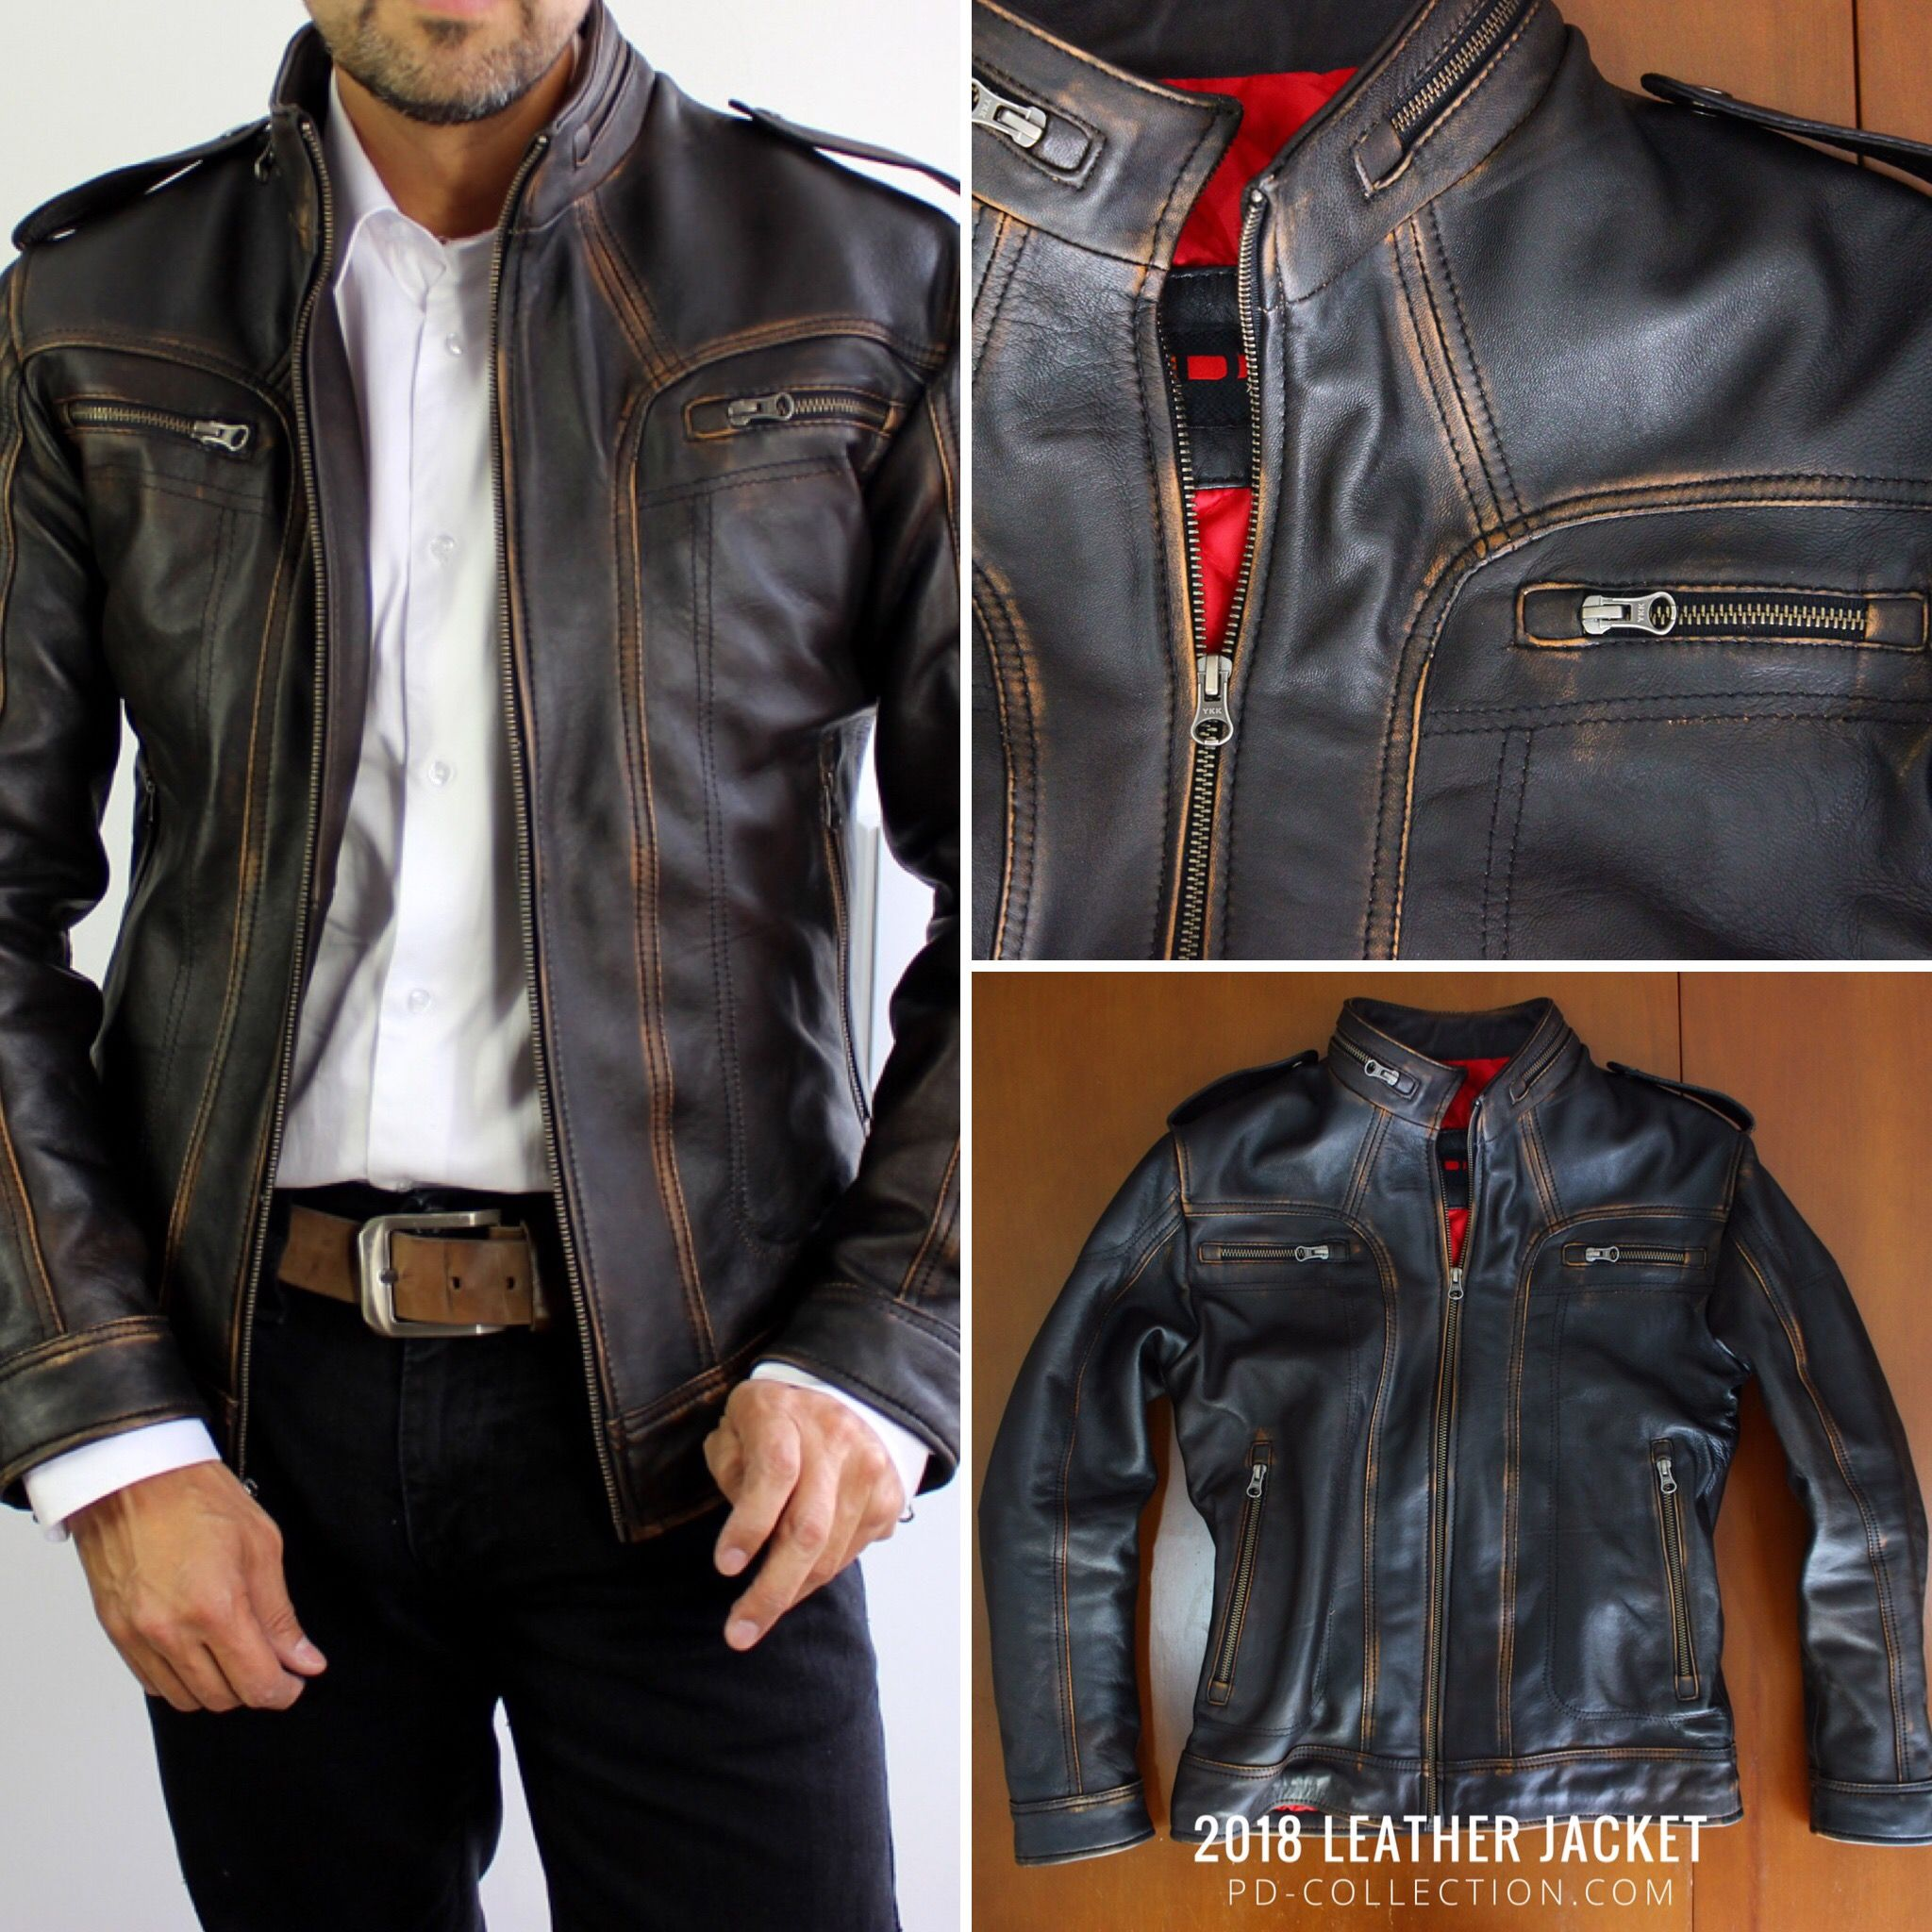 2018 AX Leather Jacket Distressed Black Leather jacket